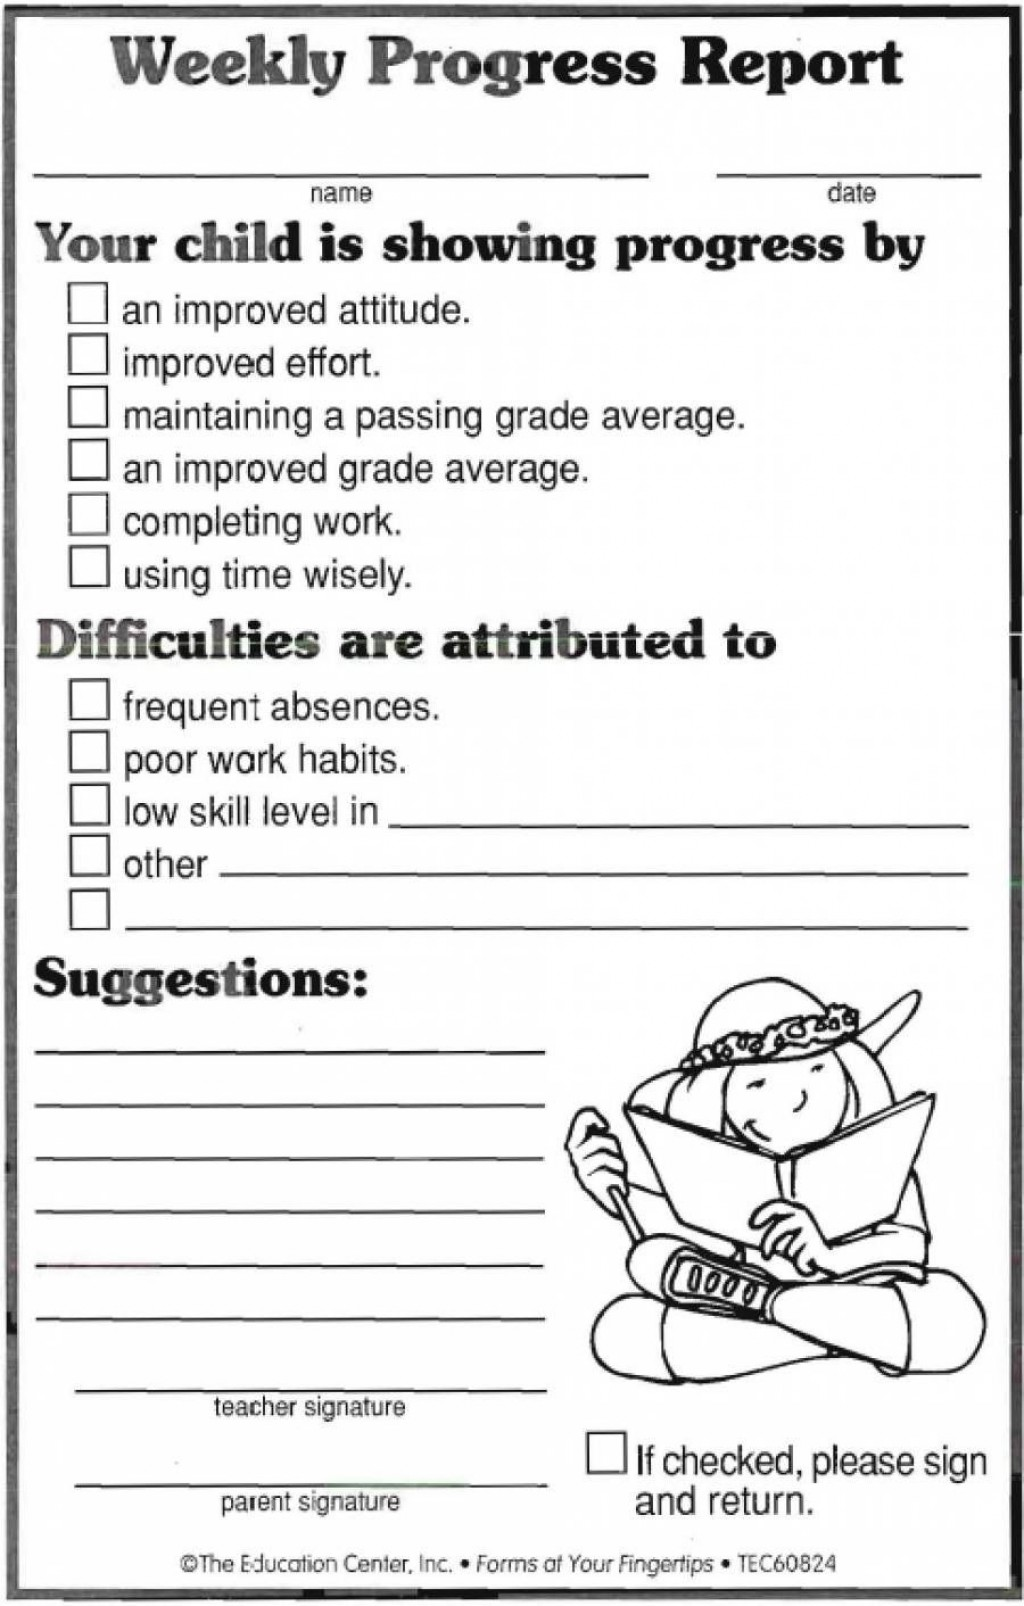 009 Striking Preschool Daily Report Template High Definition  Form Baby SheetLarge